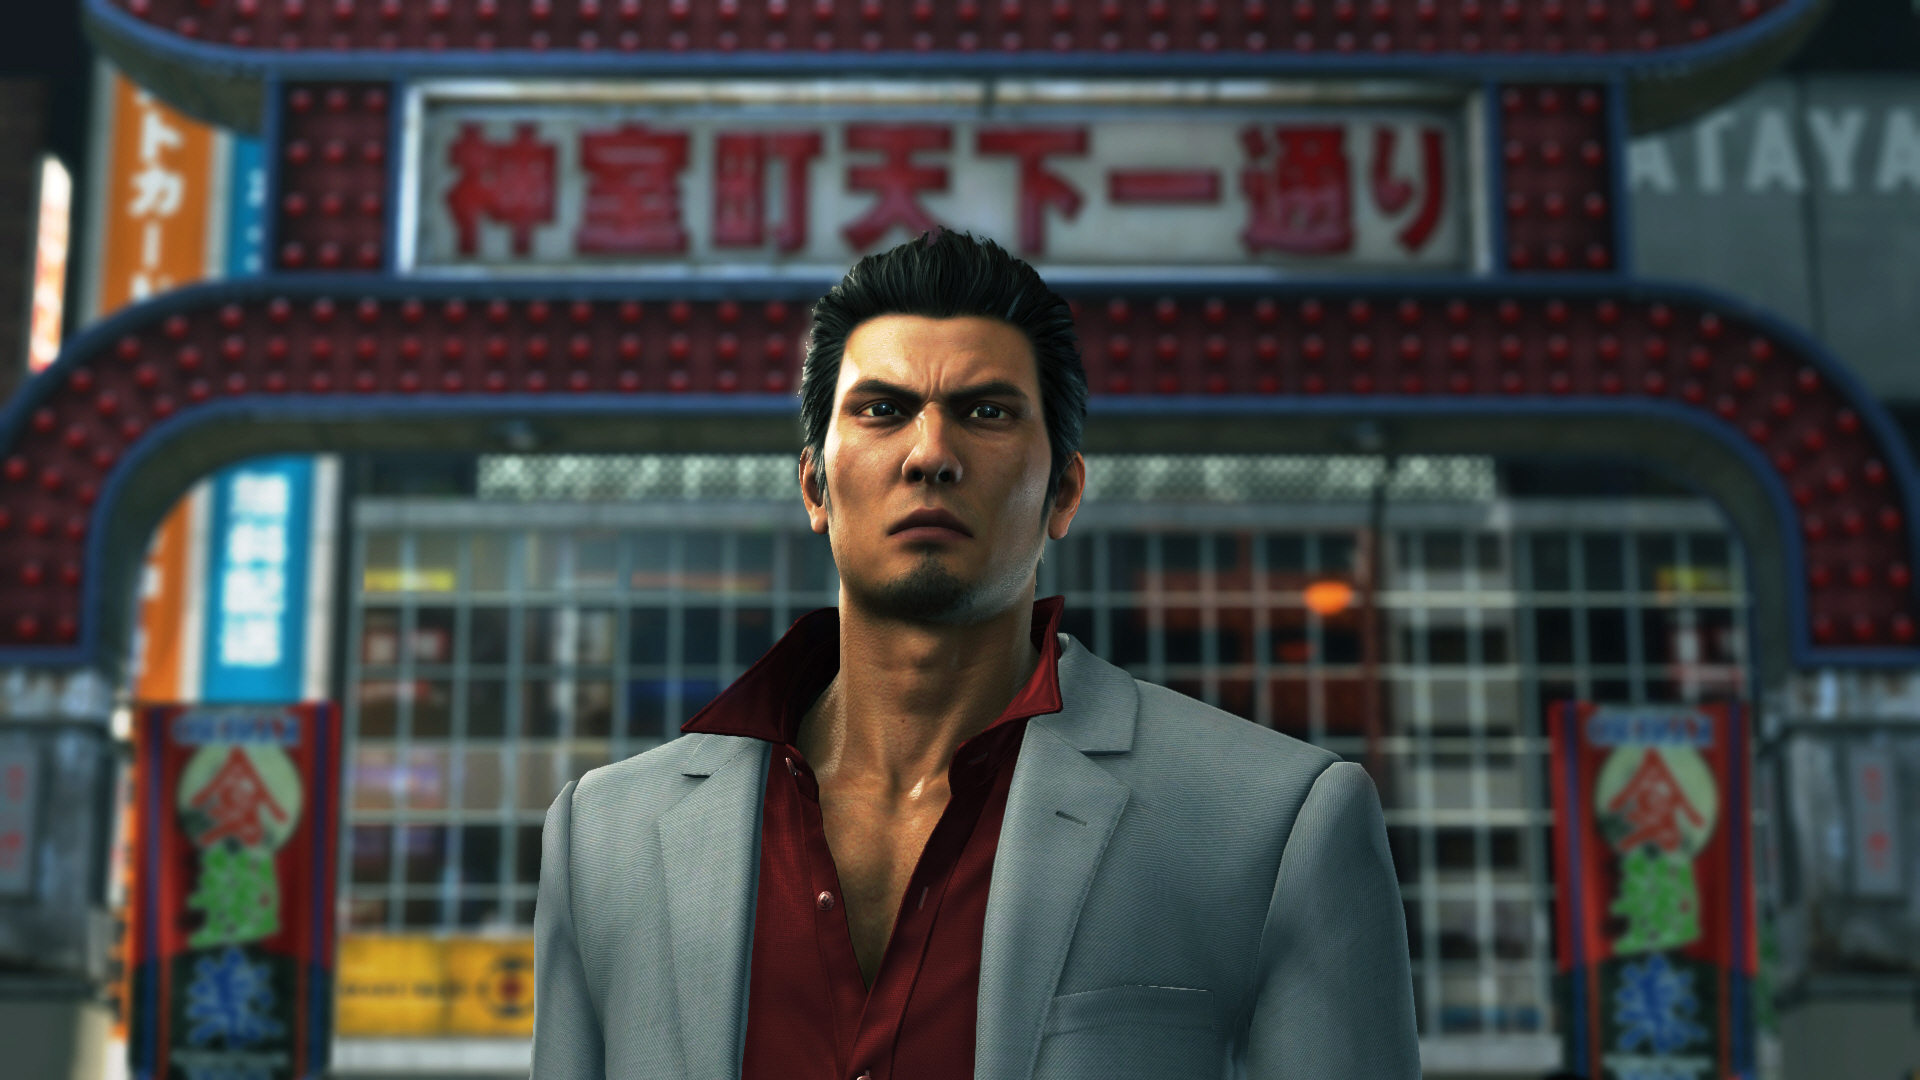 Yakuza 6 Delayed Until April 17, 2018